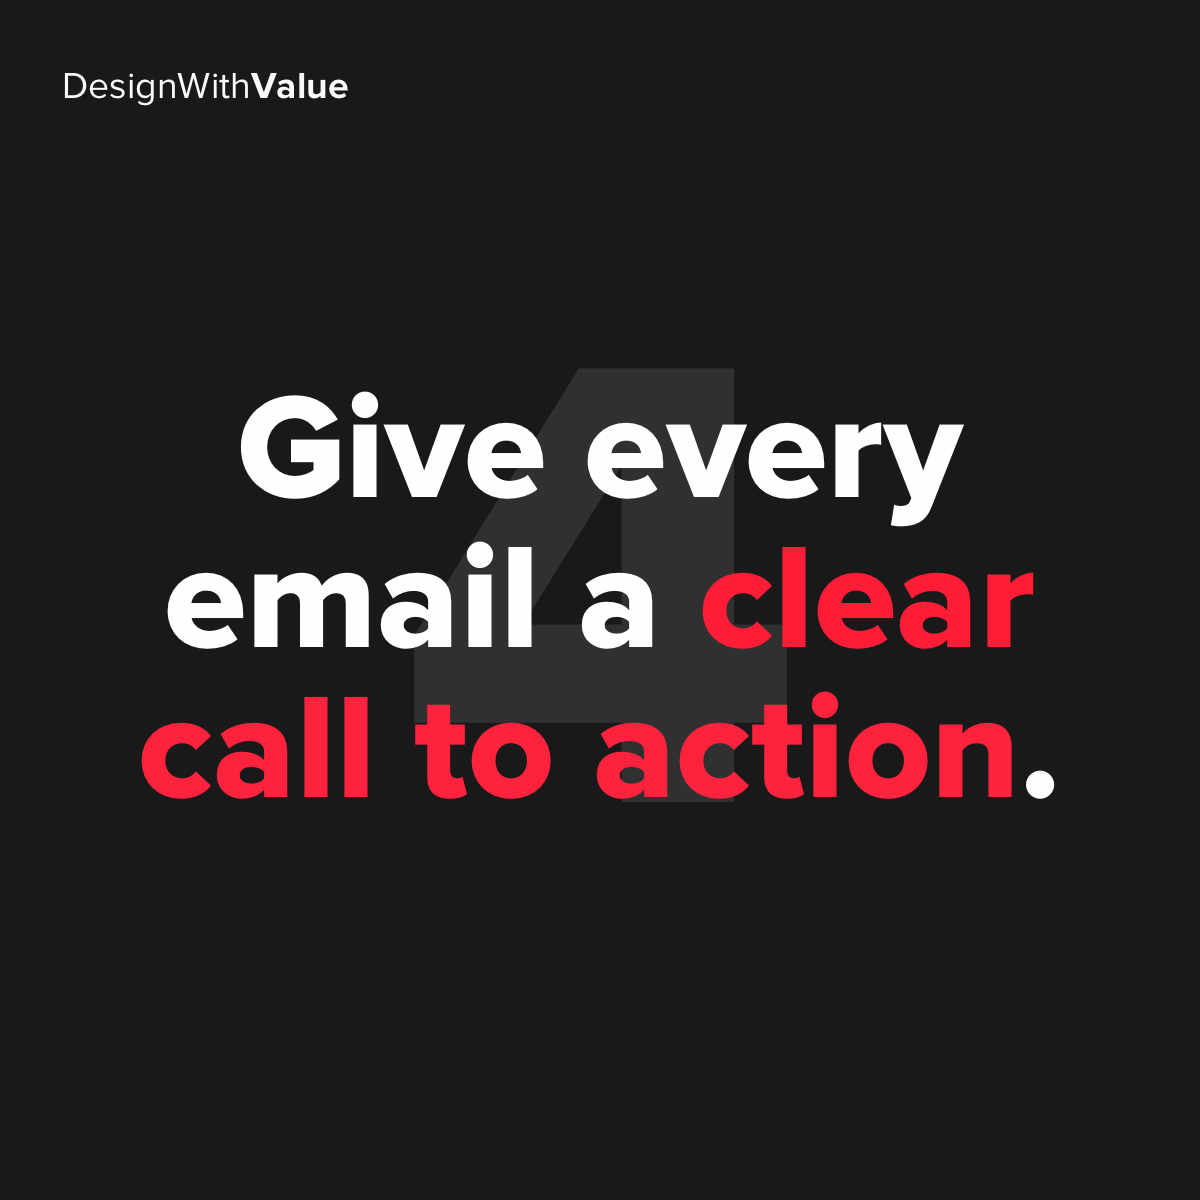 Give every email a clear call to action.